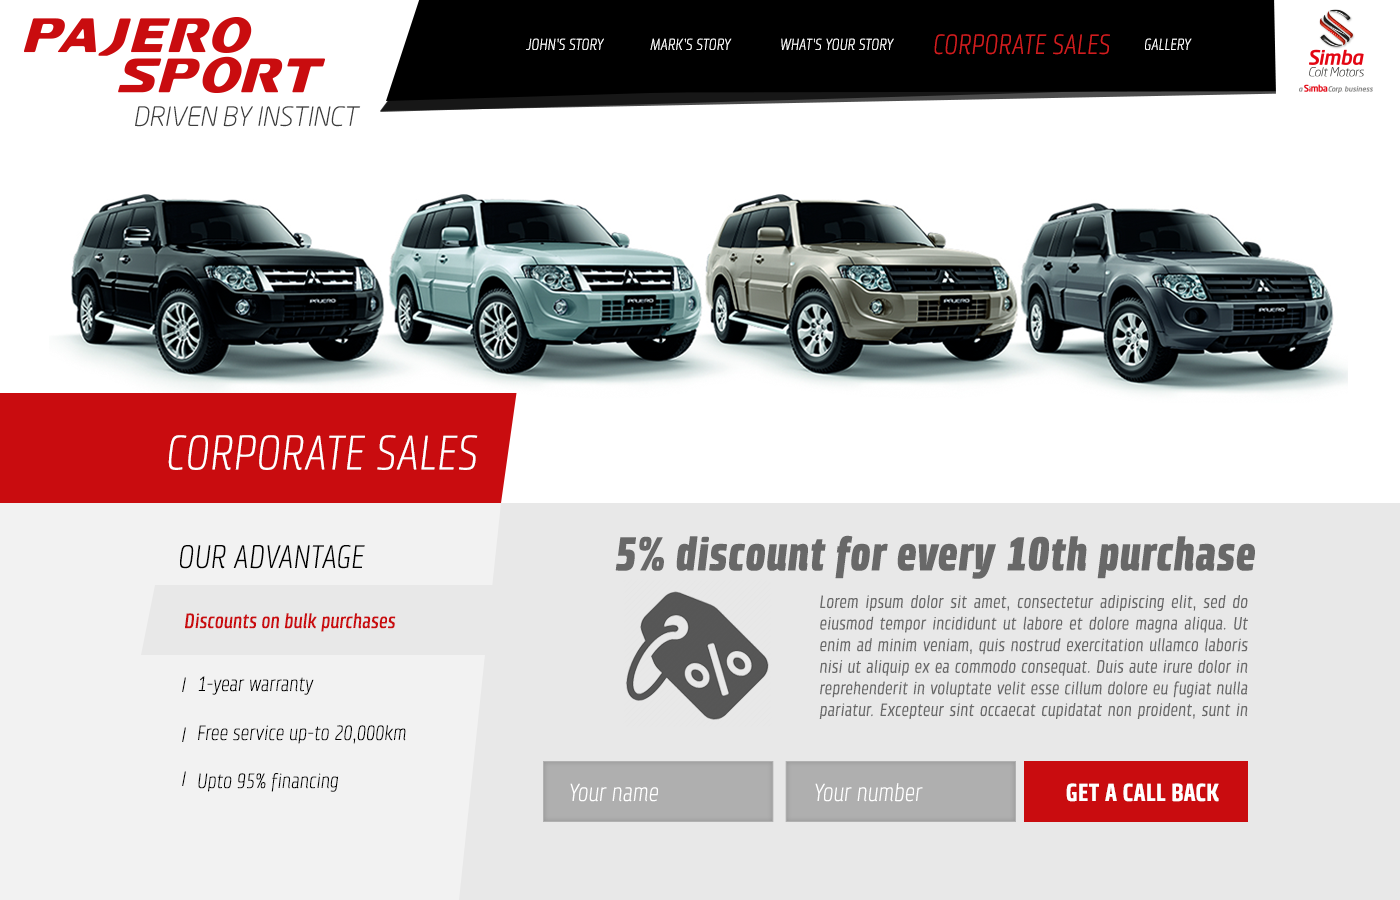 Pajero_sport-Microsite-Corporate